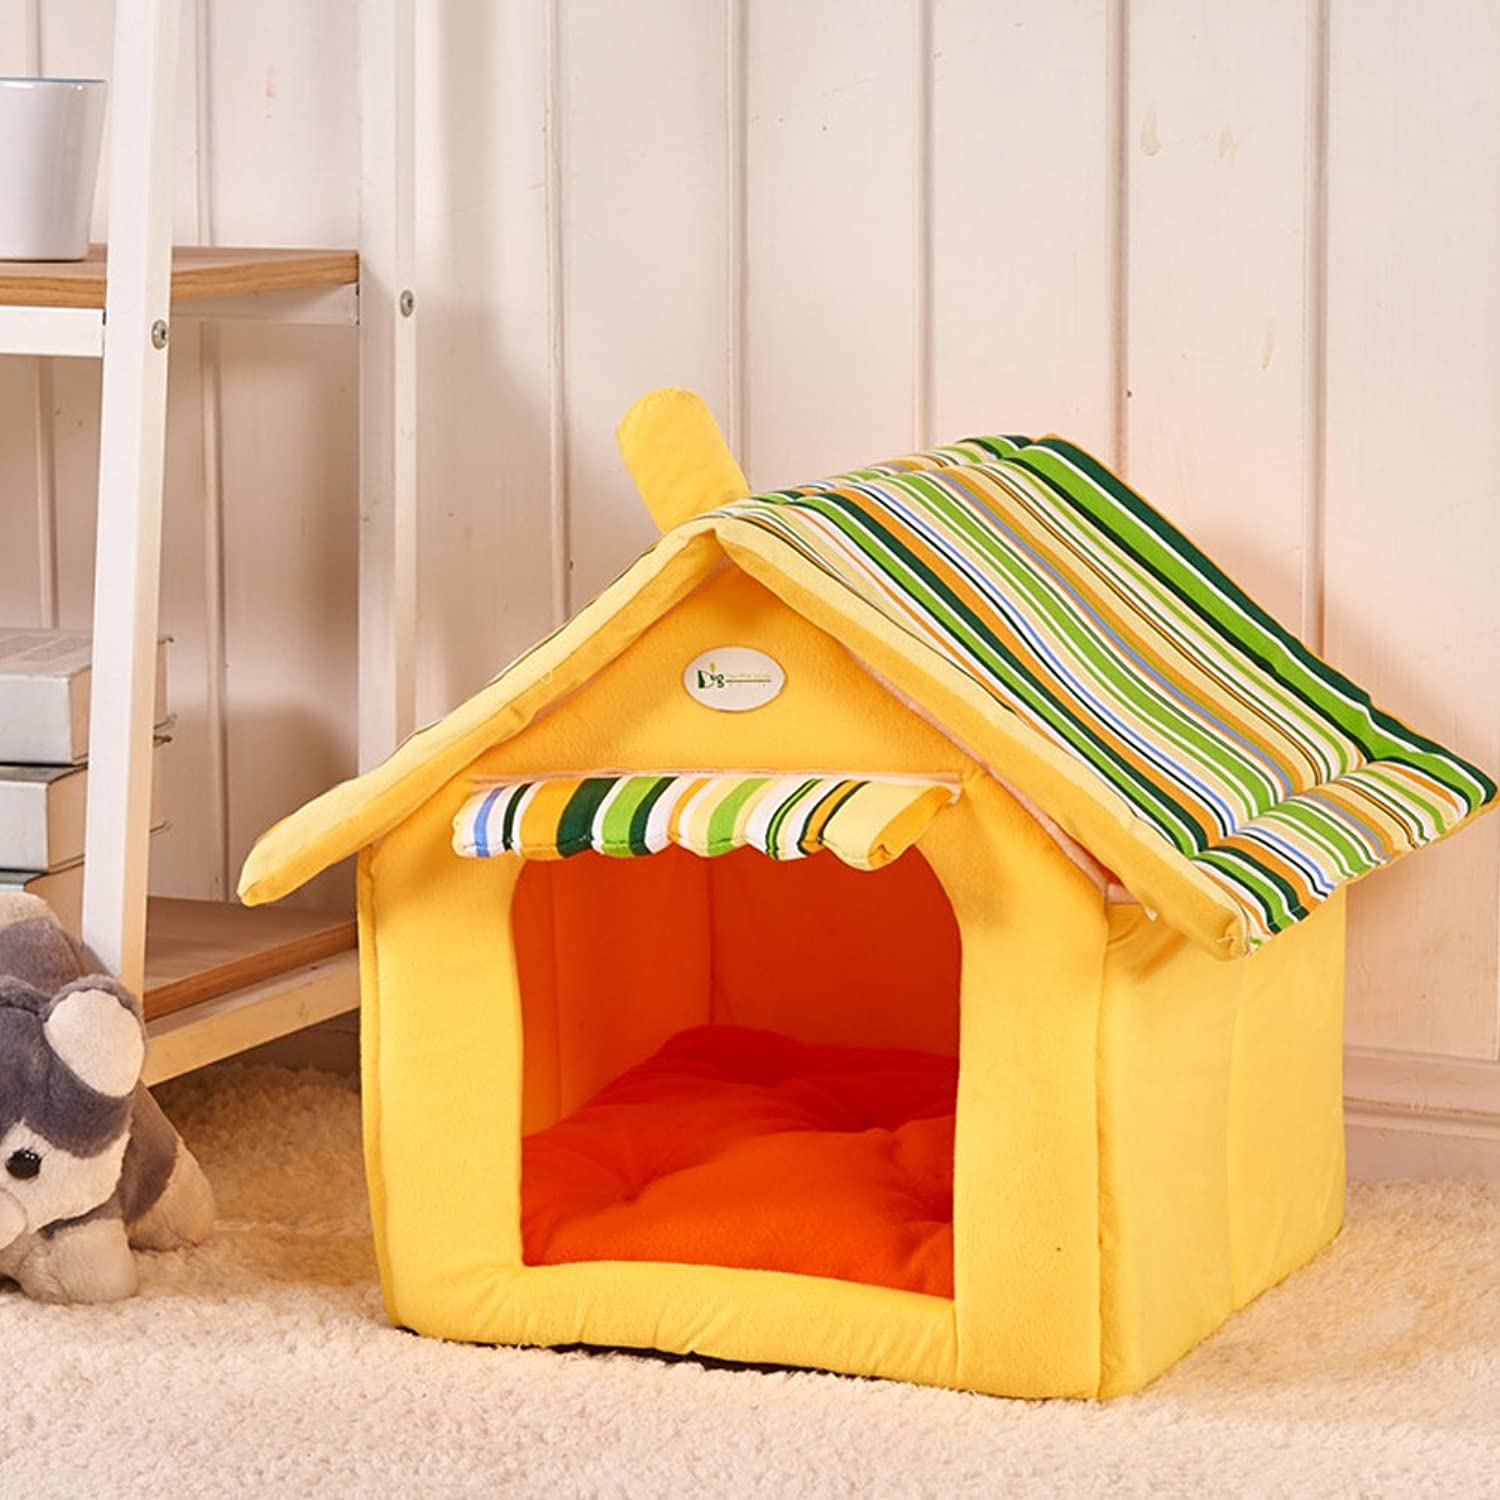 Pet House Portable Cotton Cats Room Pet Supplies Soft Dog House Bed (Large, Yellow)